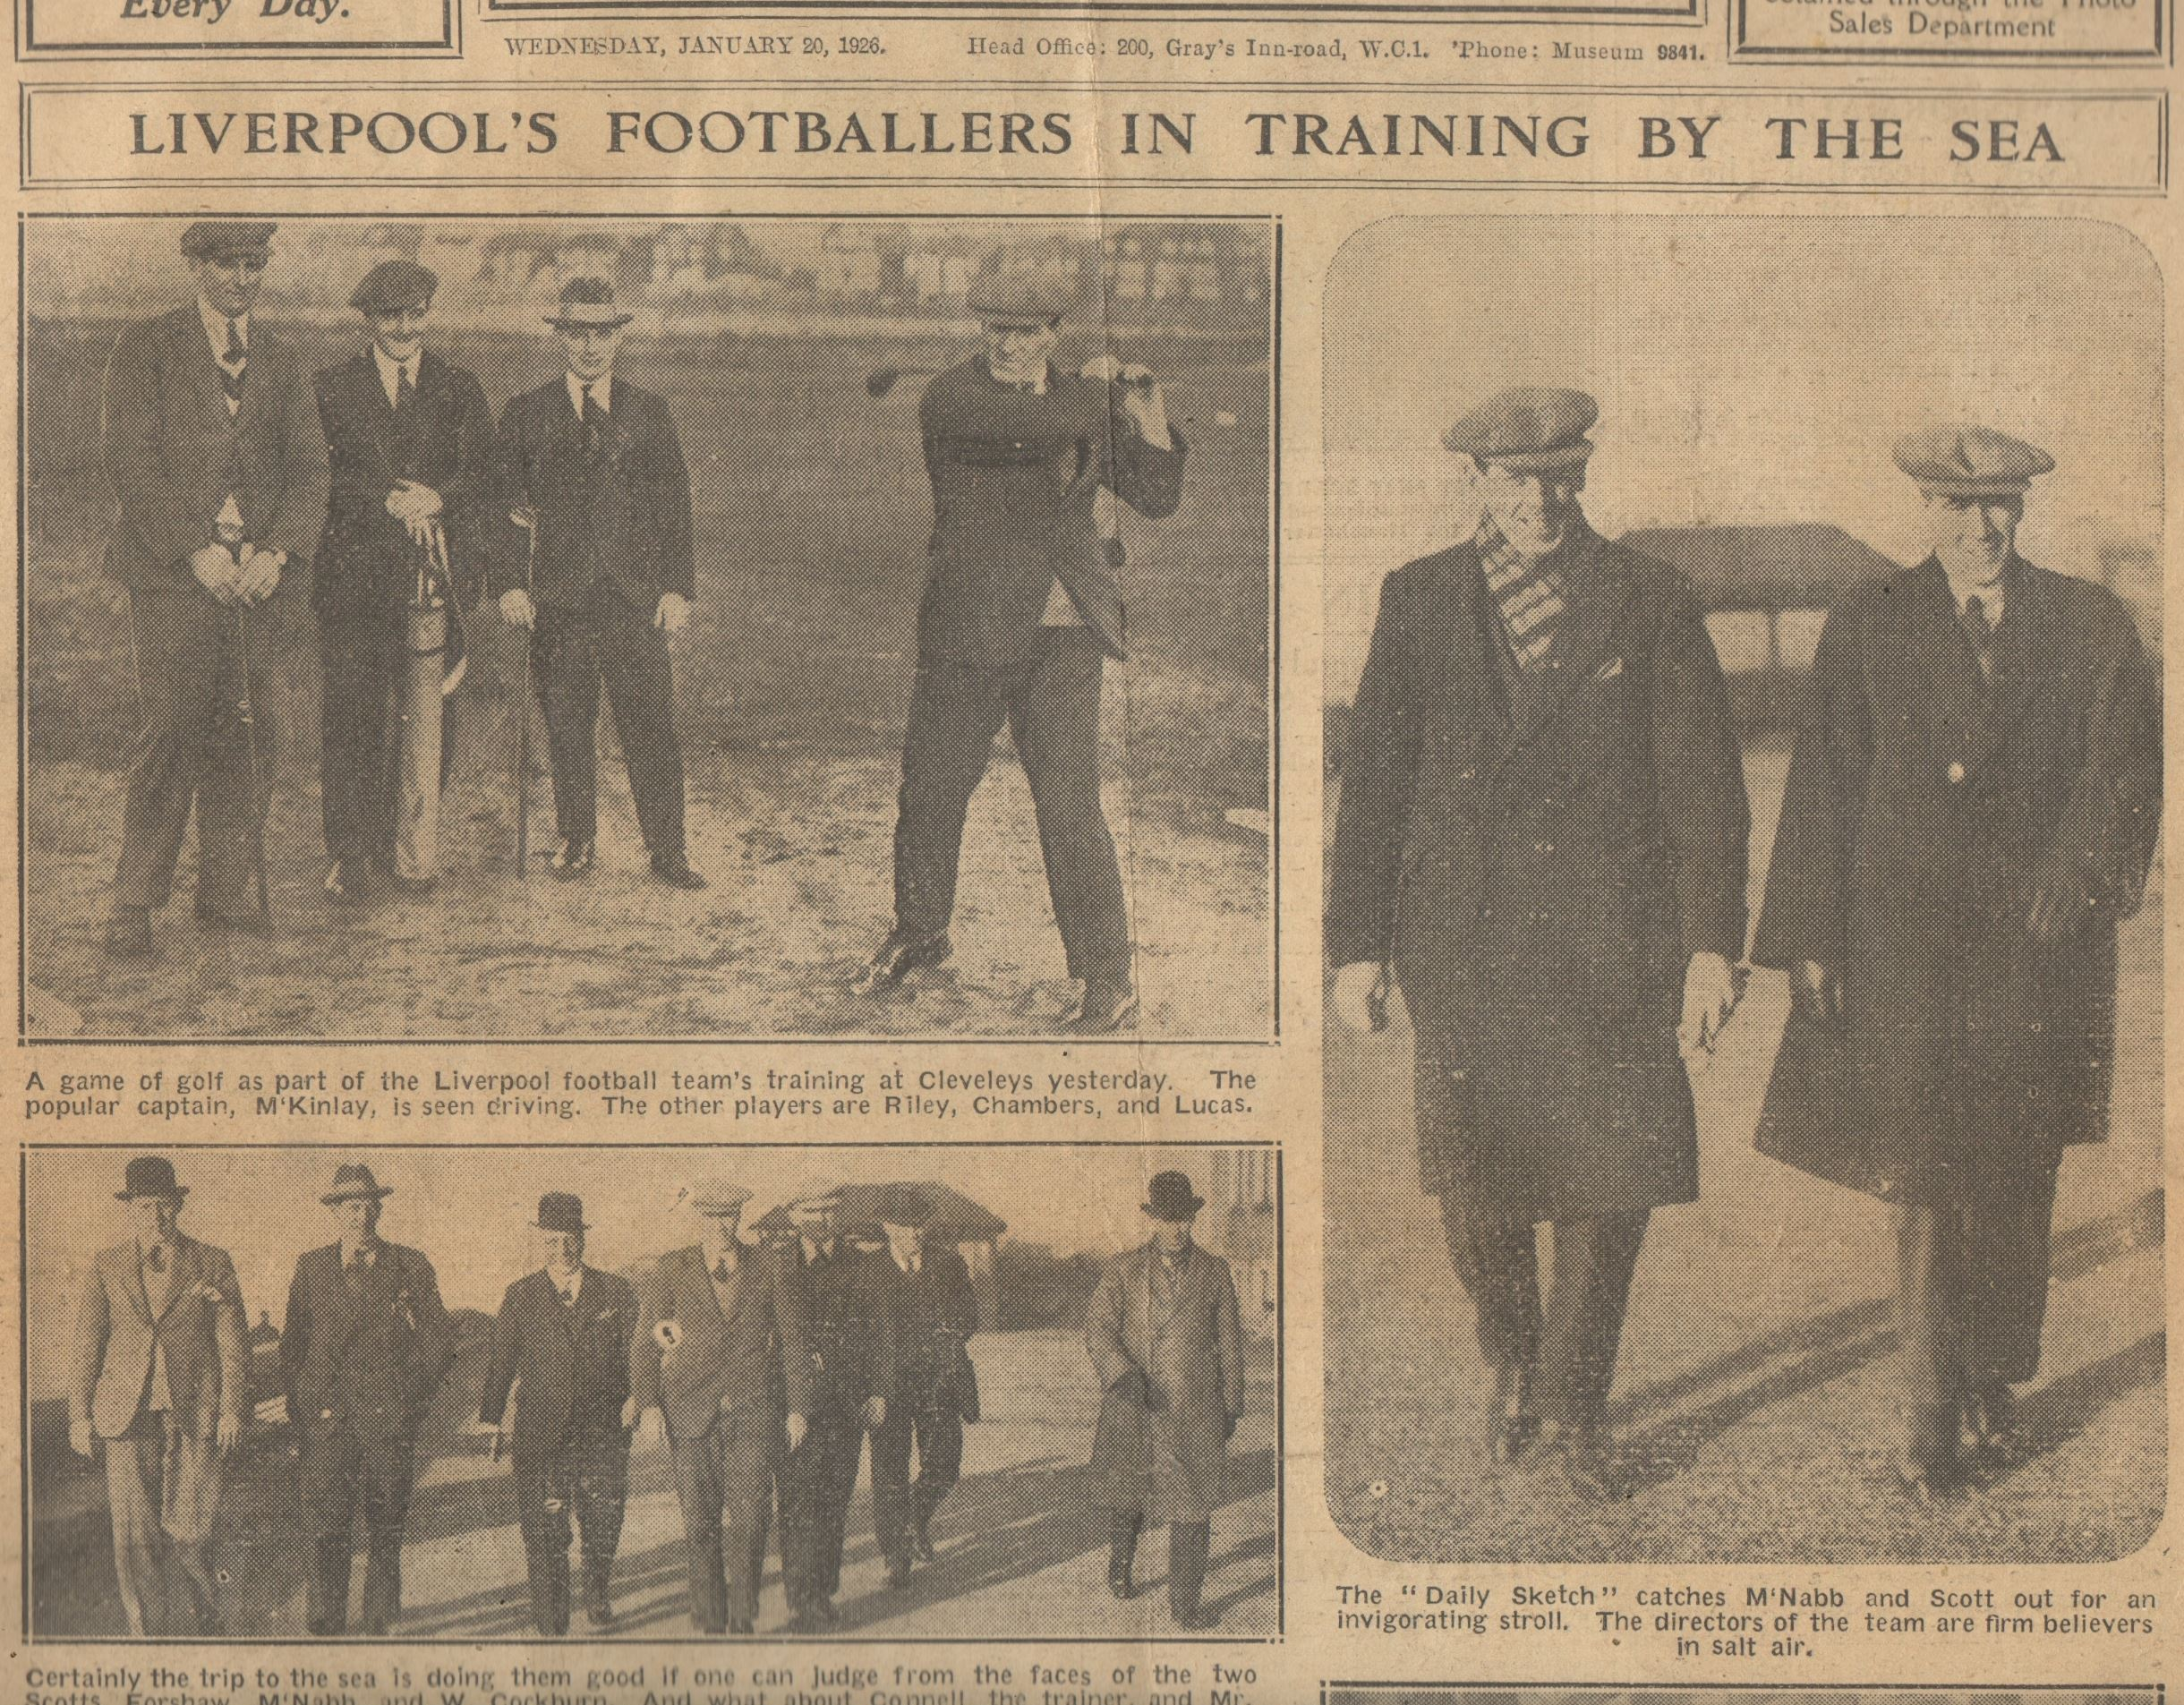 Liverpool's footballers in training by the sea - 20 January 1926